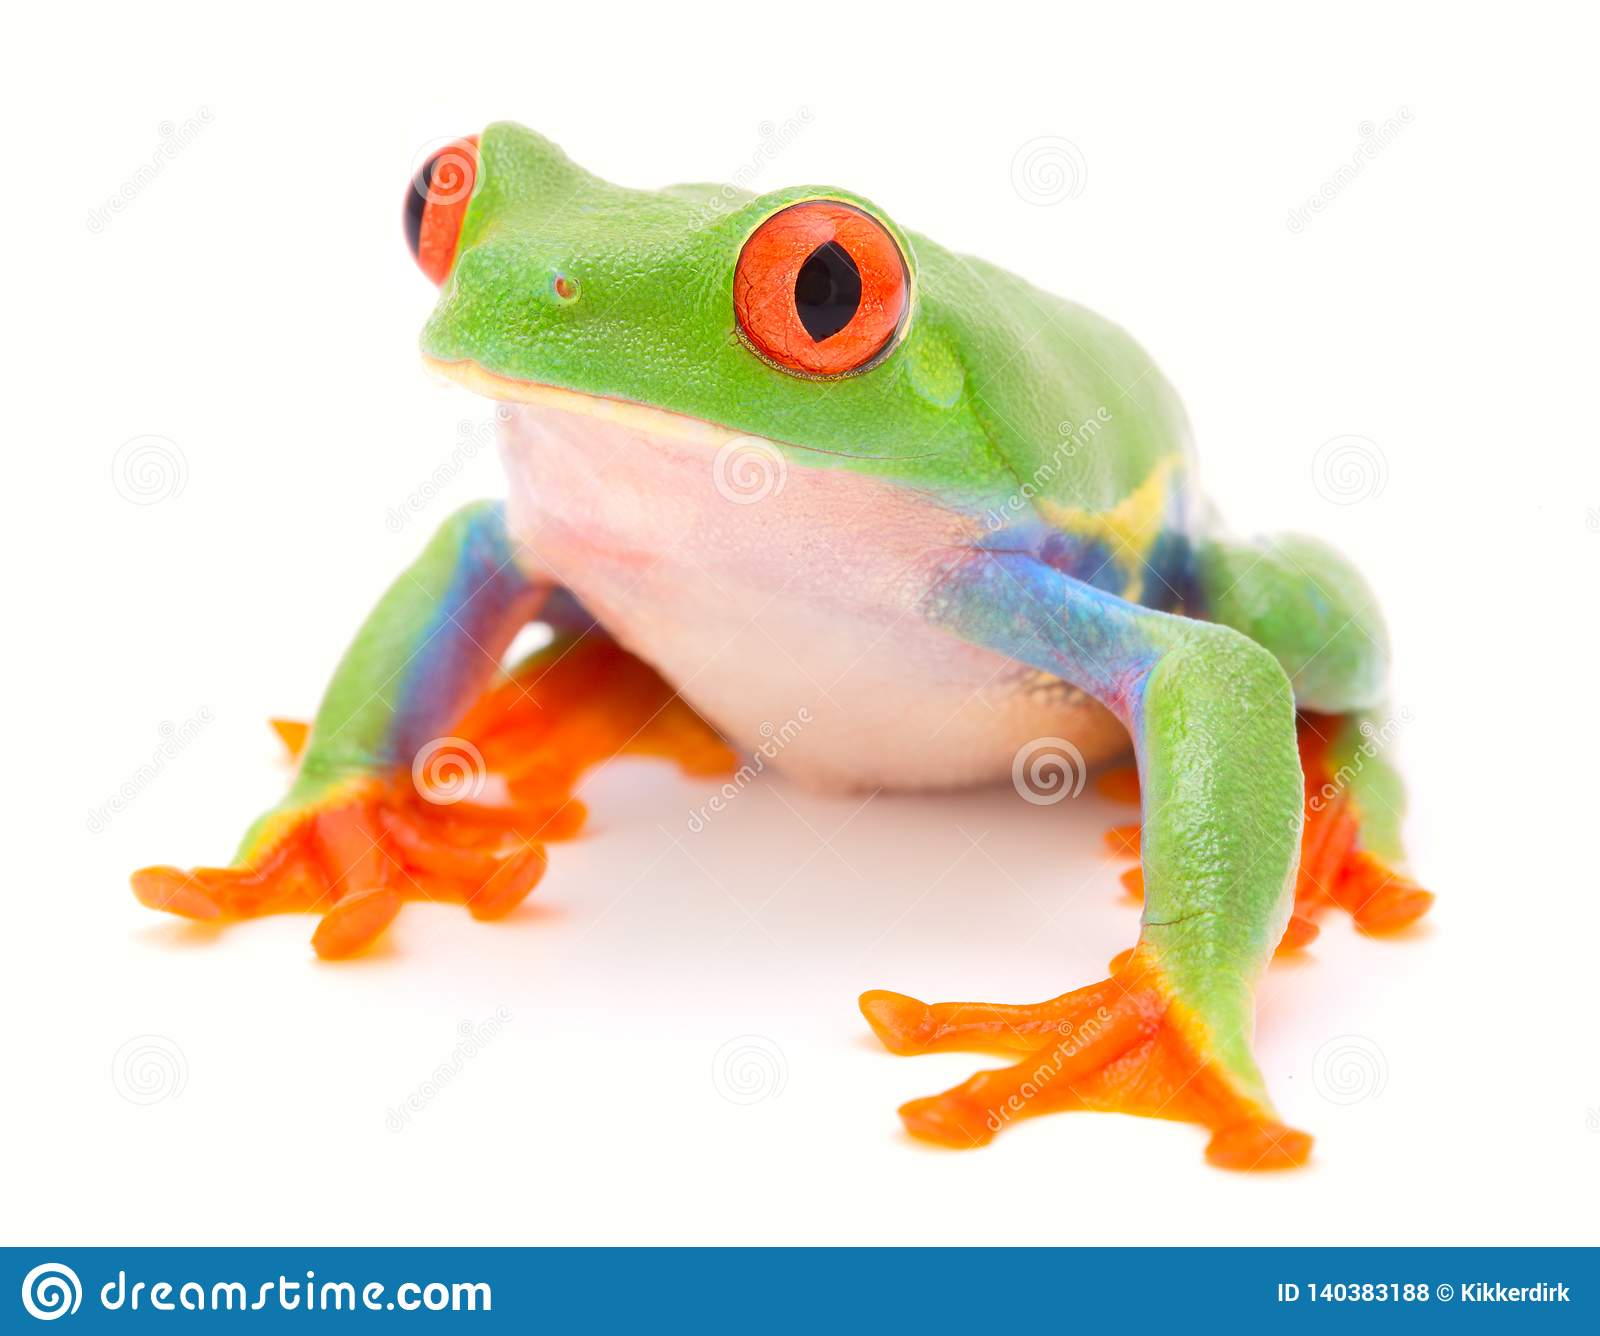 Red eyed monkey tree frog, a tropical animal from the rain forest in Costa Rica